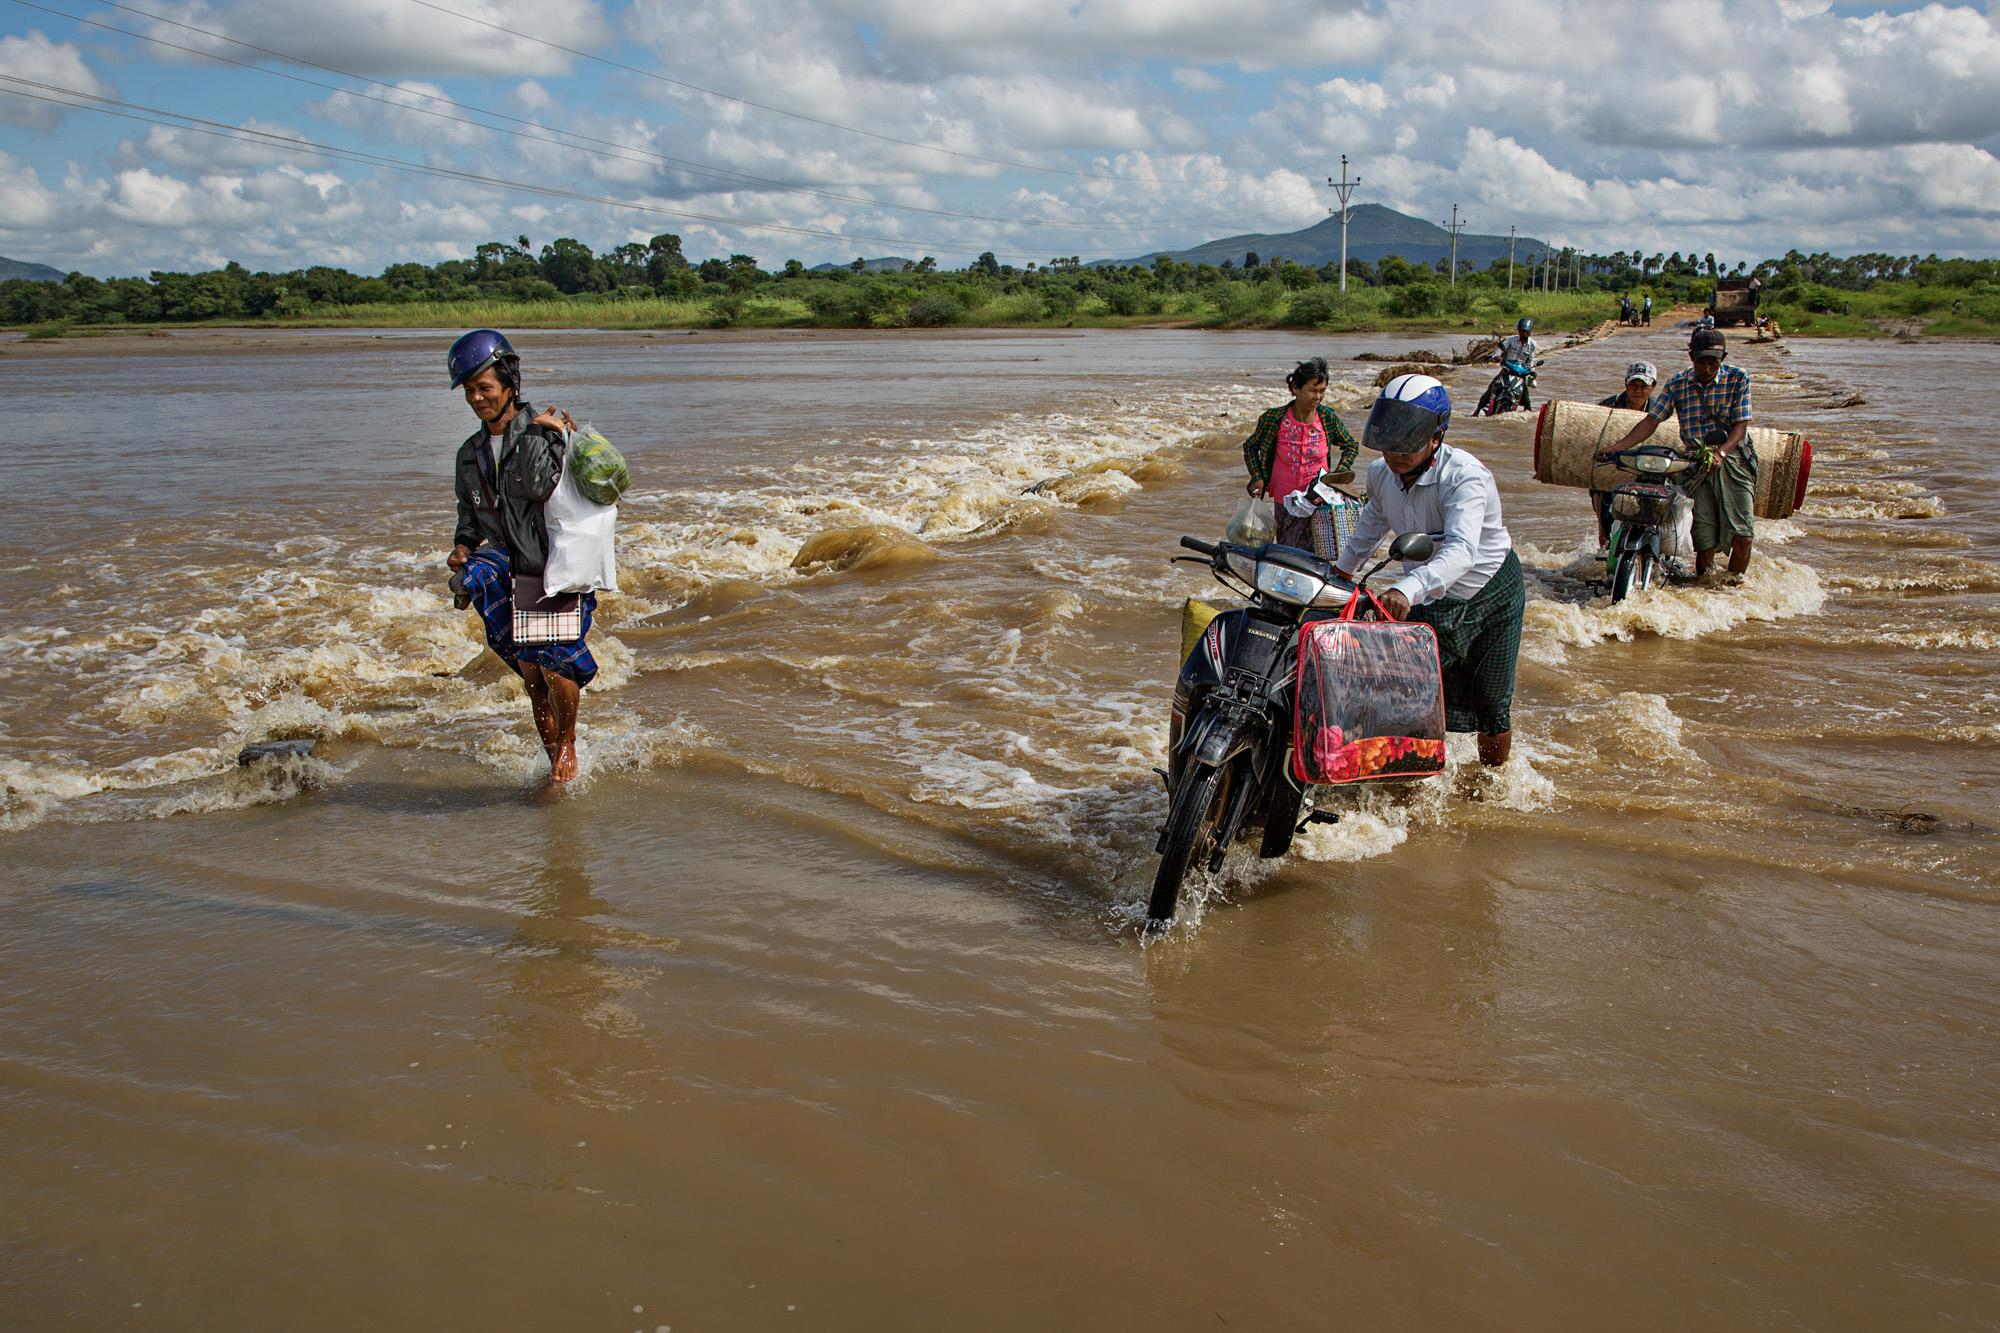 People make their way across a badly flooded road in the country side outside of Mandalay, Myanmar. Poor infrastructure and heavy rains means difficult going for rural populations.